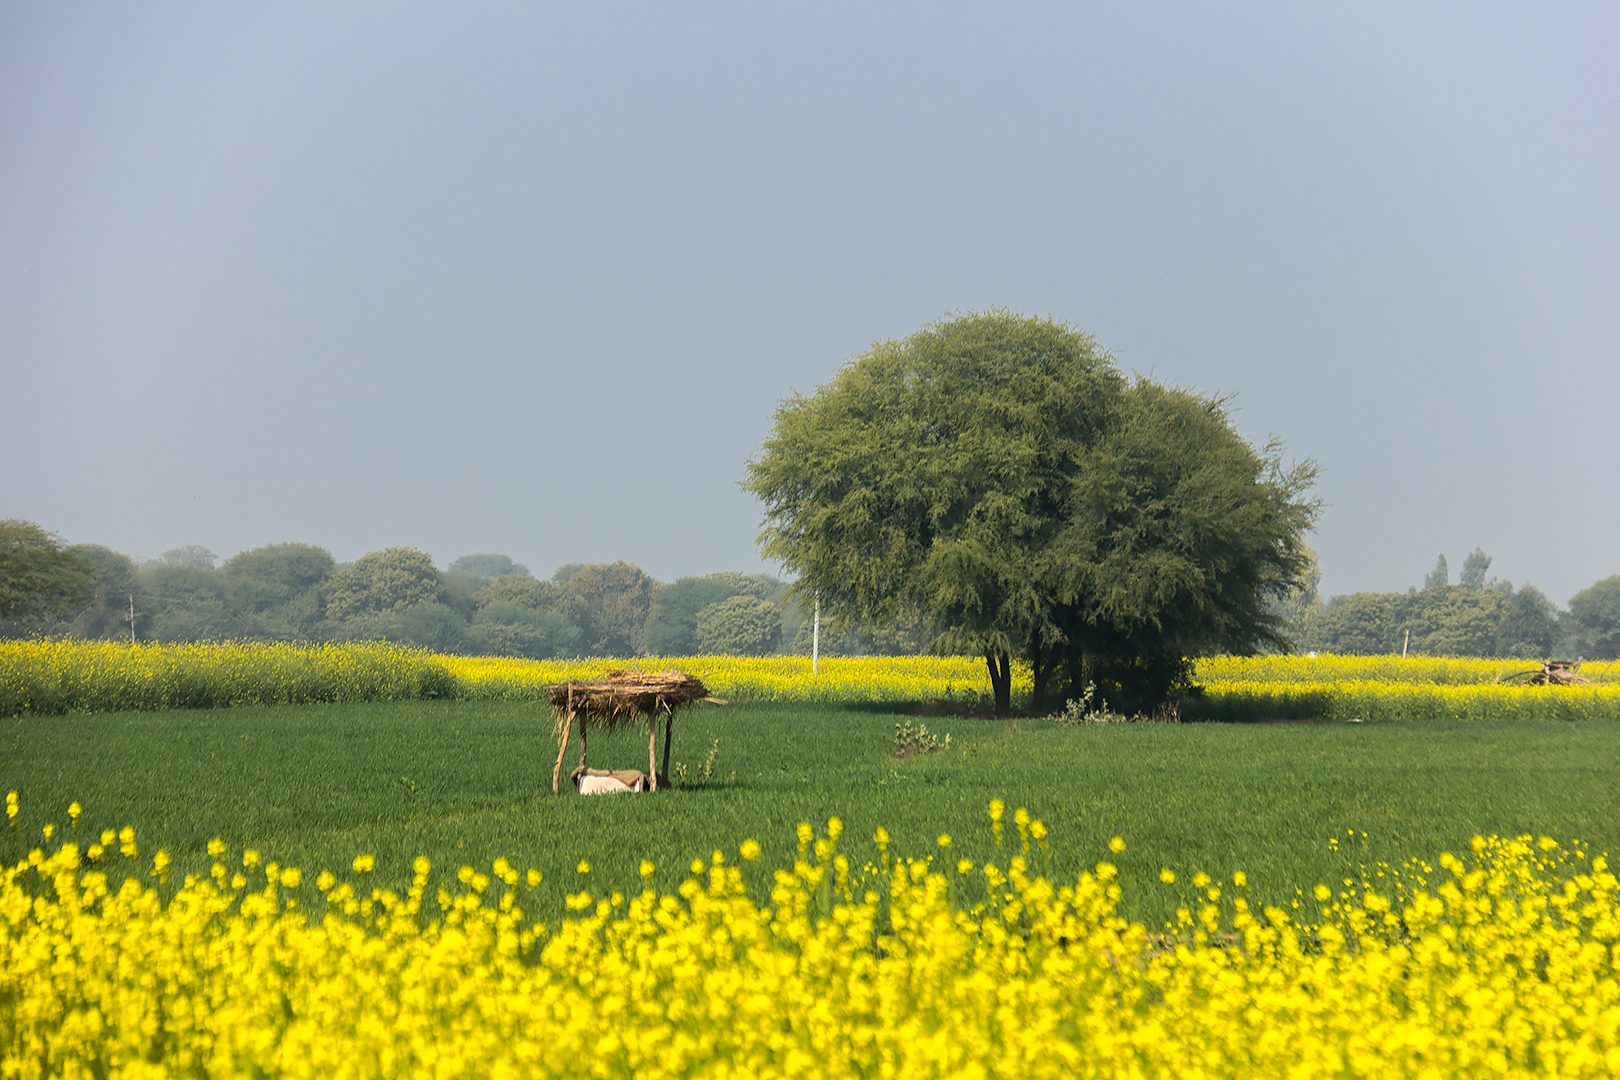 A field in Rajasthan